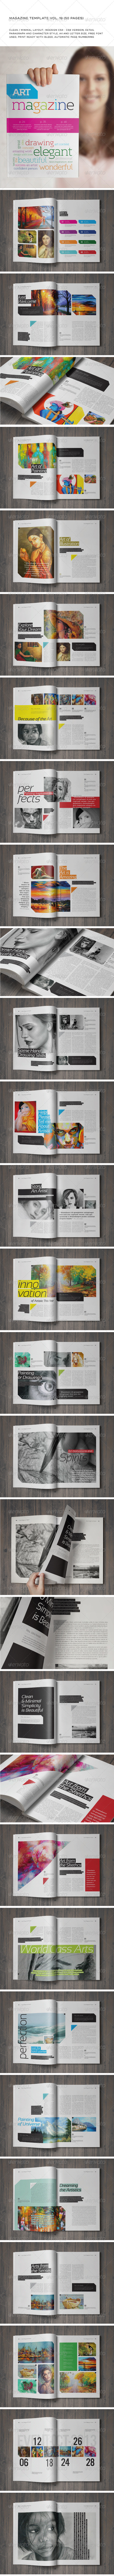 A4/Letter 50 Pages Mgz (Vol. 19) - Magazines Print Templates